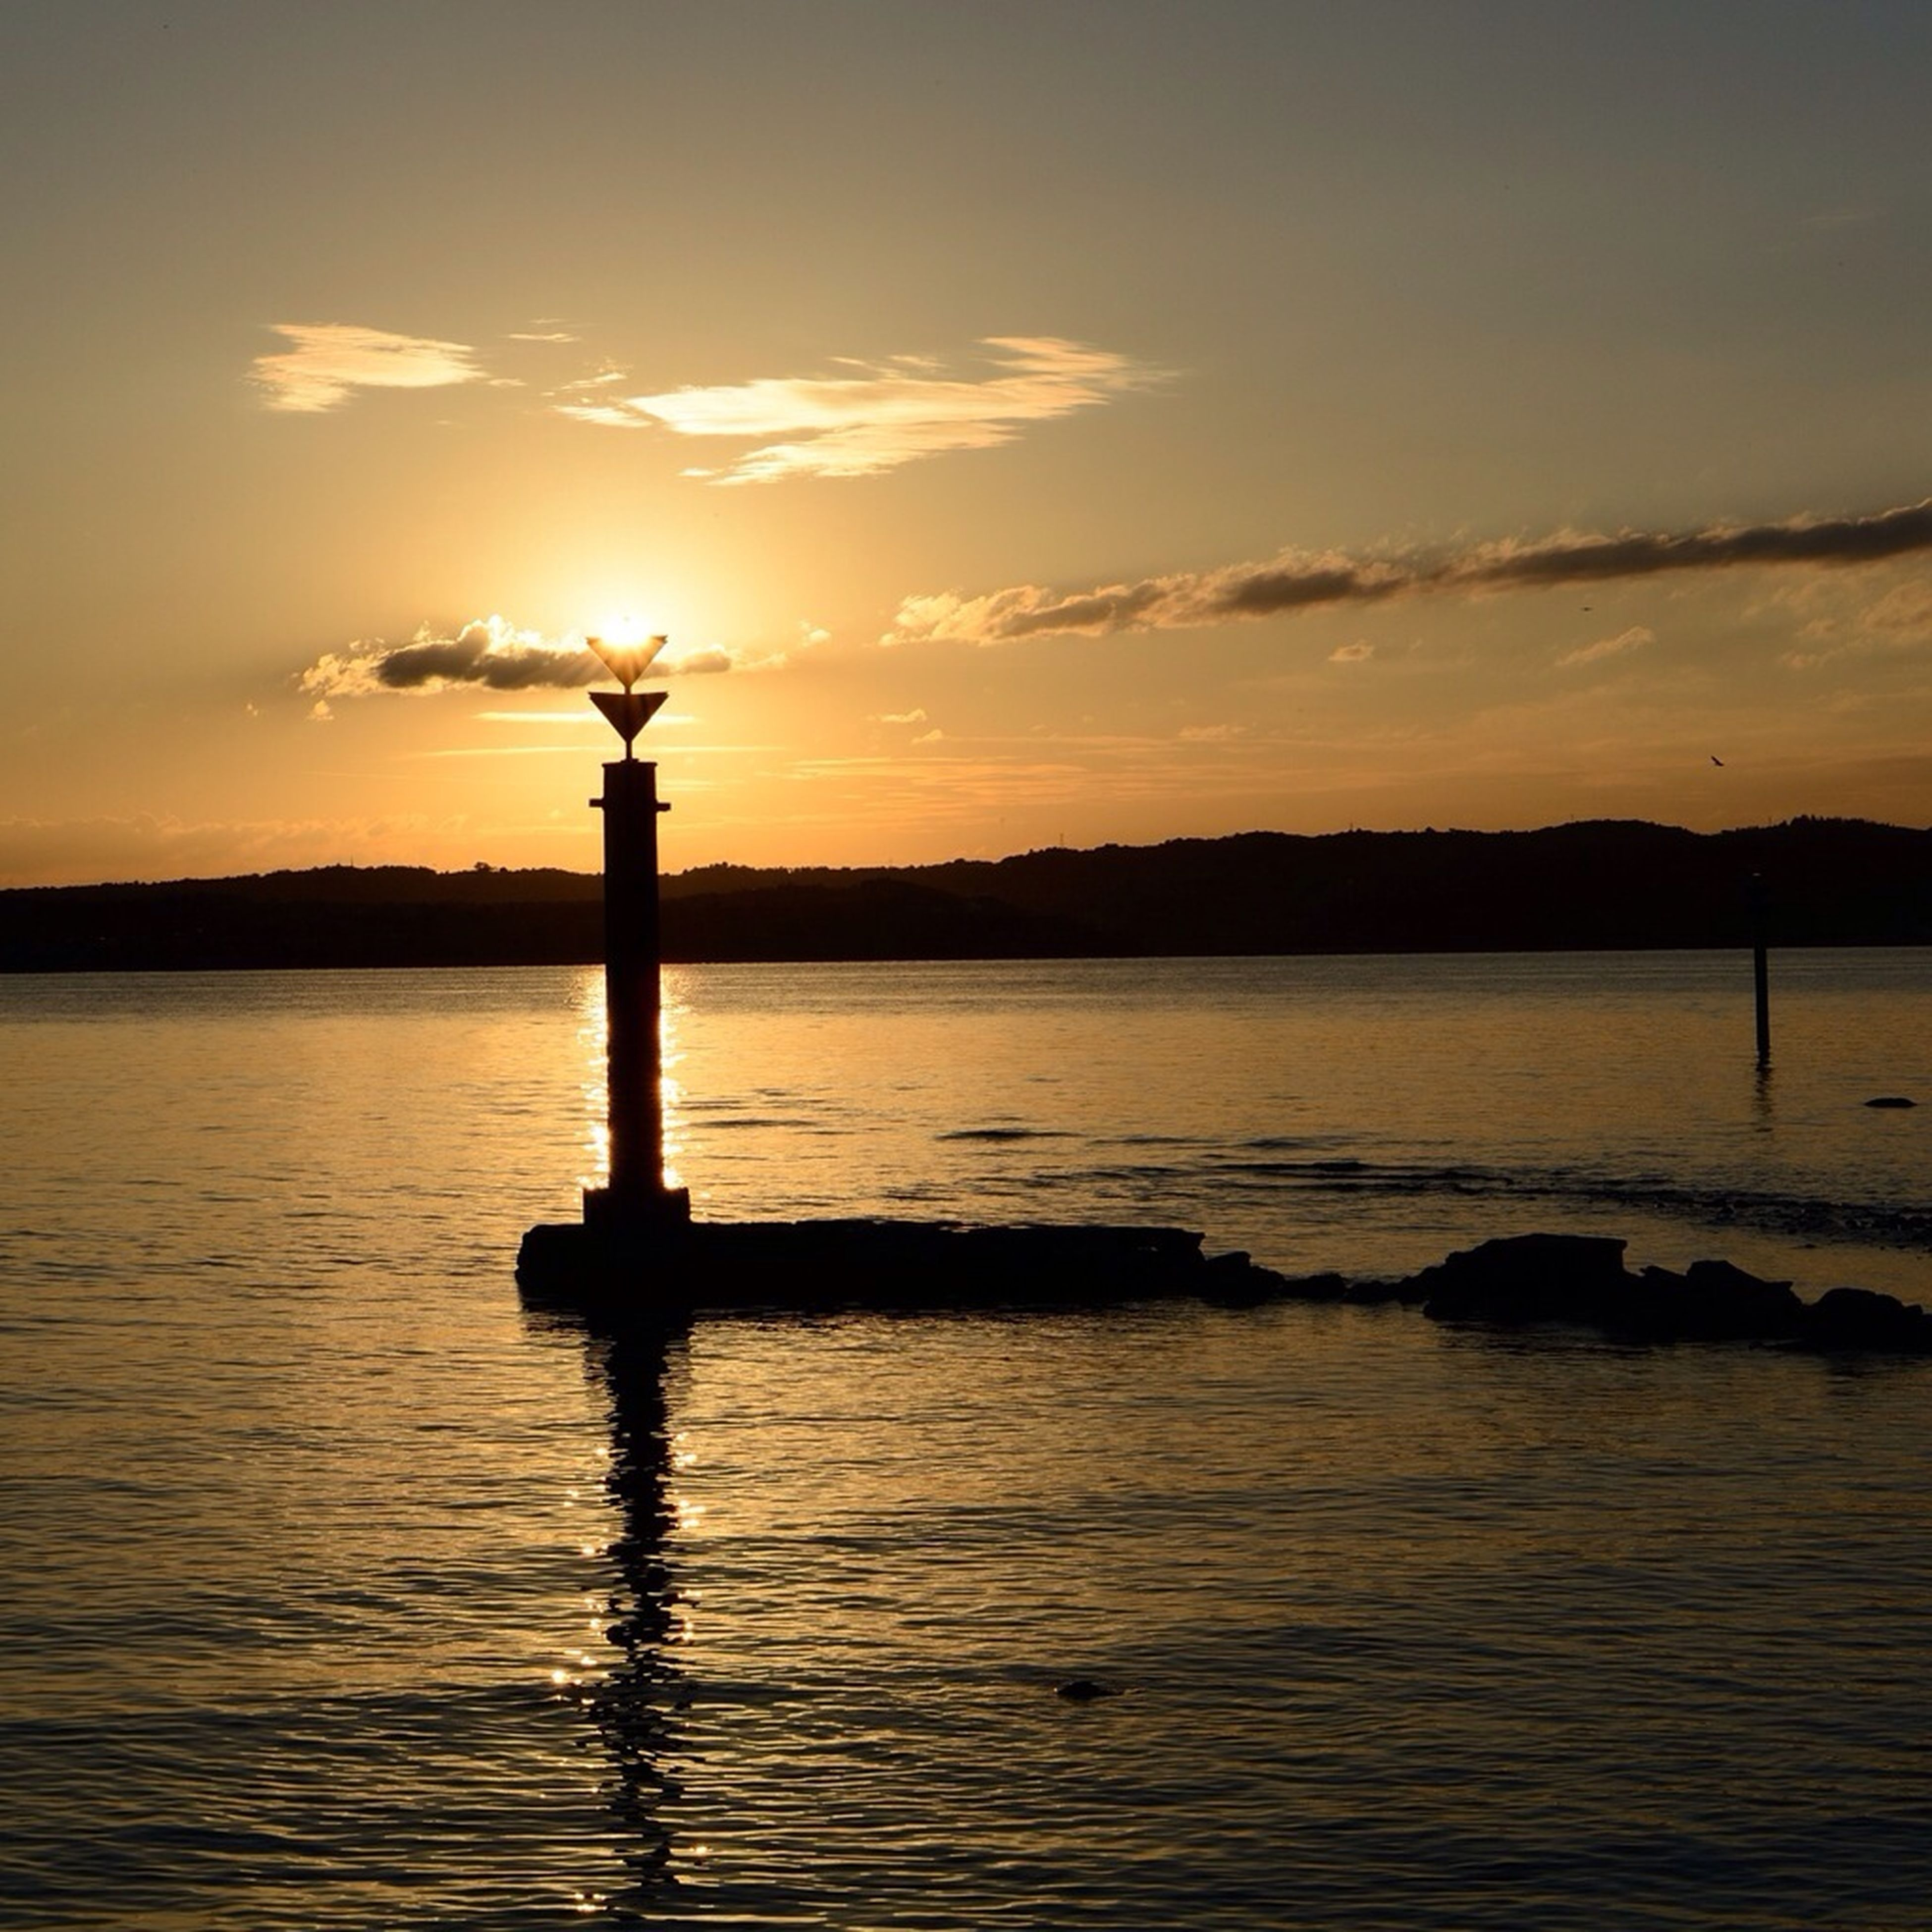 sunset, water, silhouette, sky, waterfront, tranquility, scenics, tranquil scene, beauty in nature, sea, orange color, sun, rippled, reflection, nature, idyllic, lake, wooden post, cloud - sky, cloud